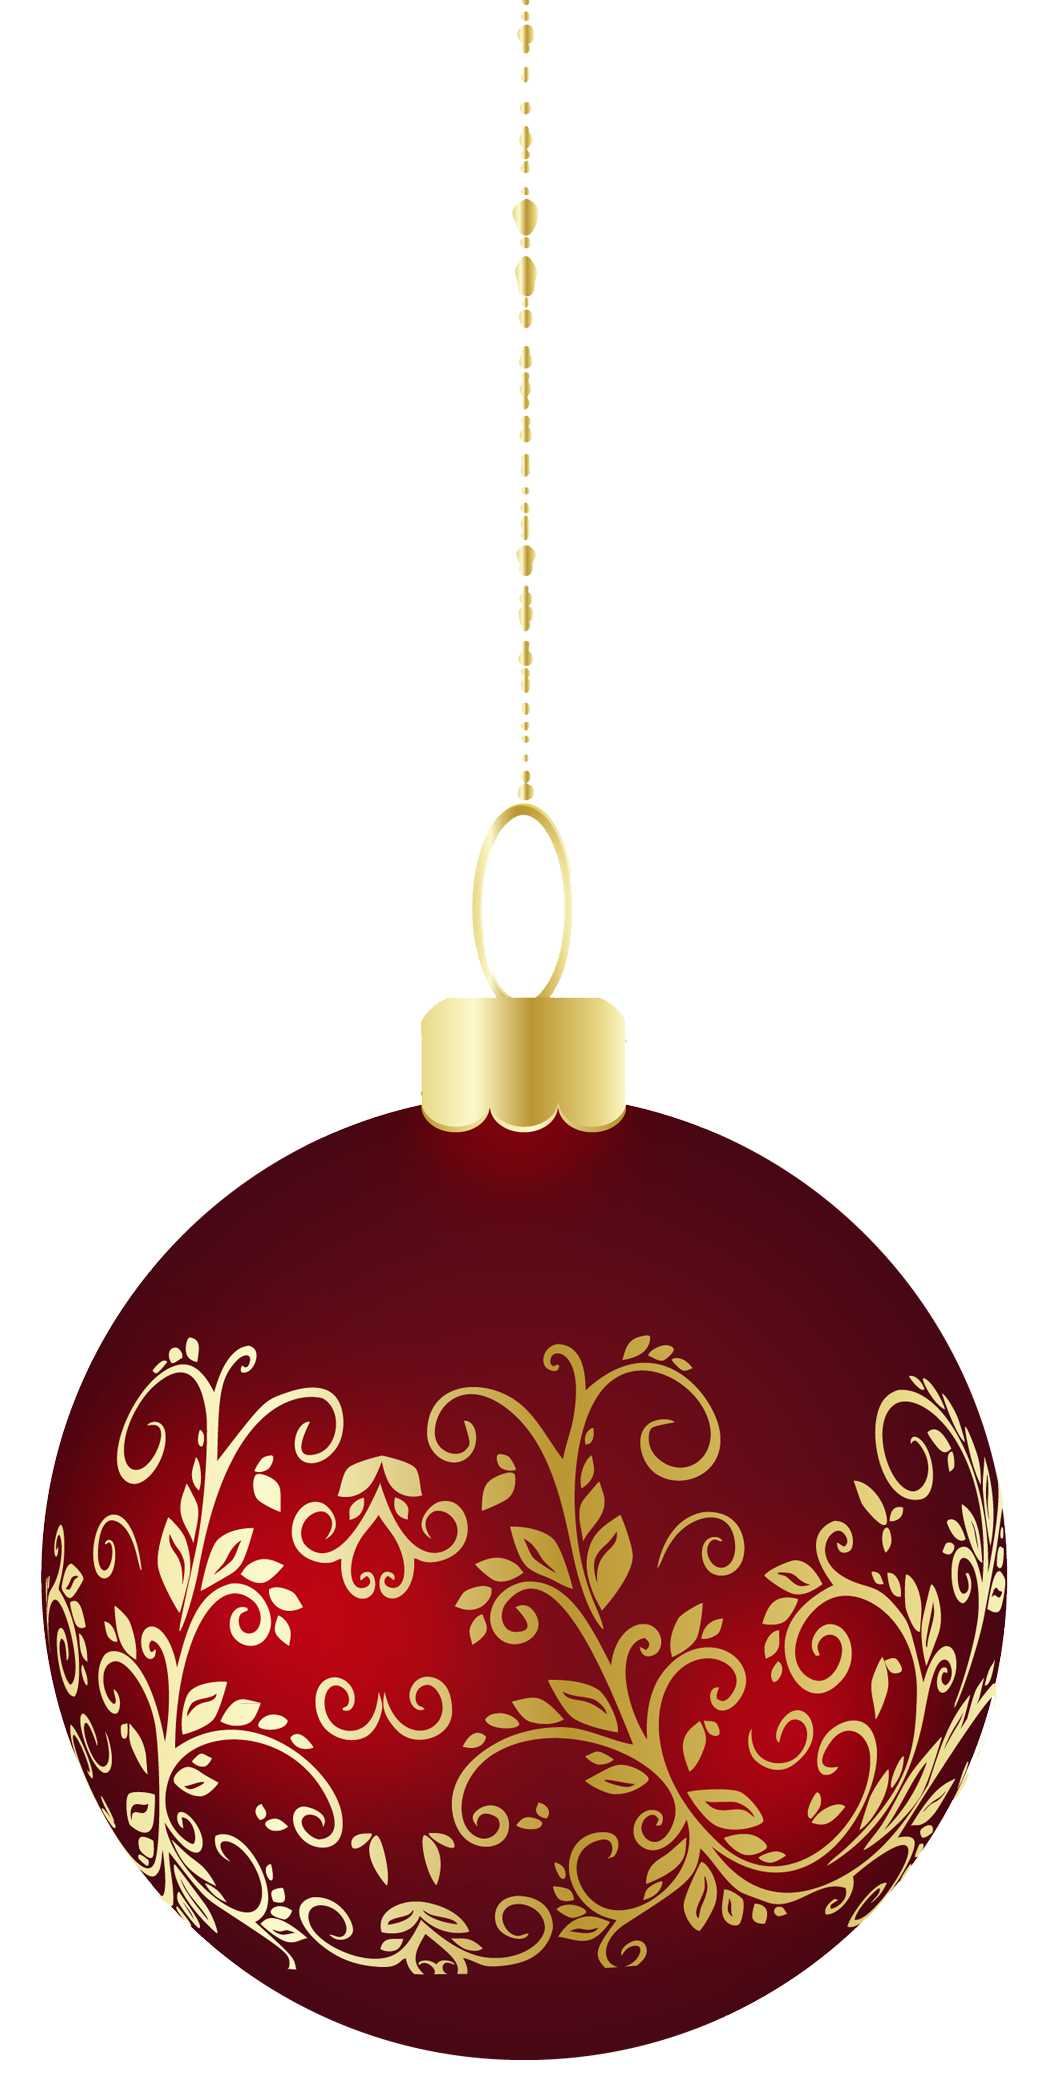 Christmas ornaments hanging png. Ball transparent images all